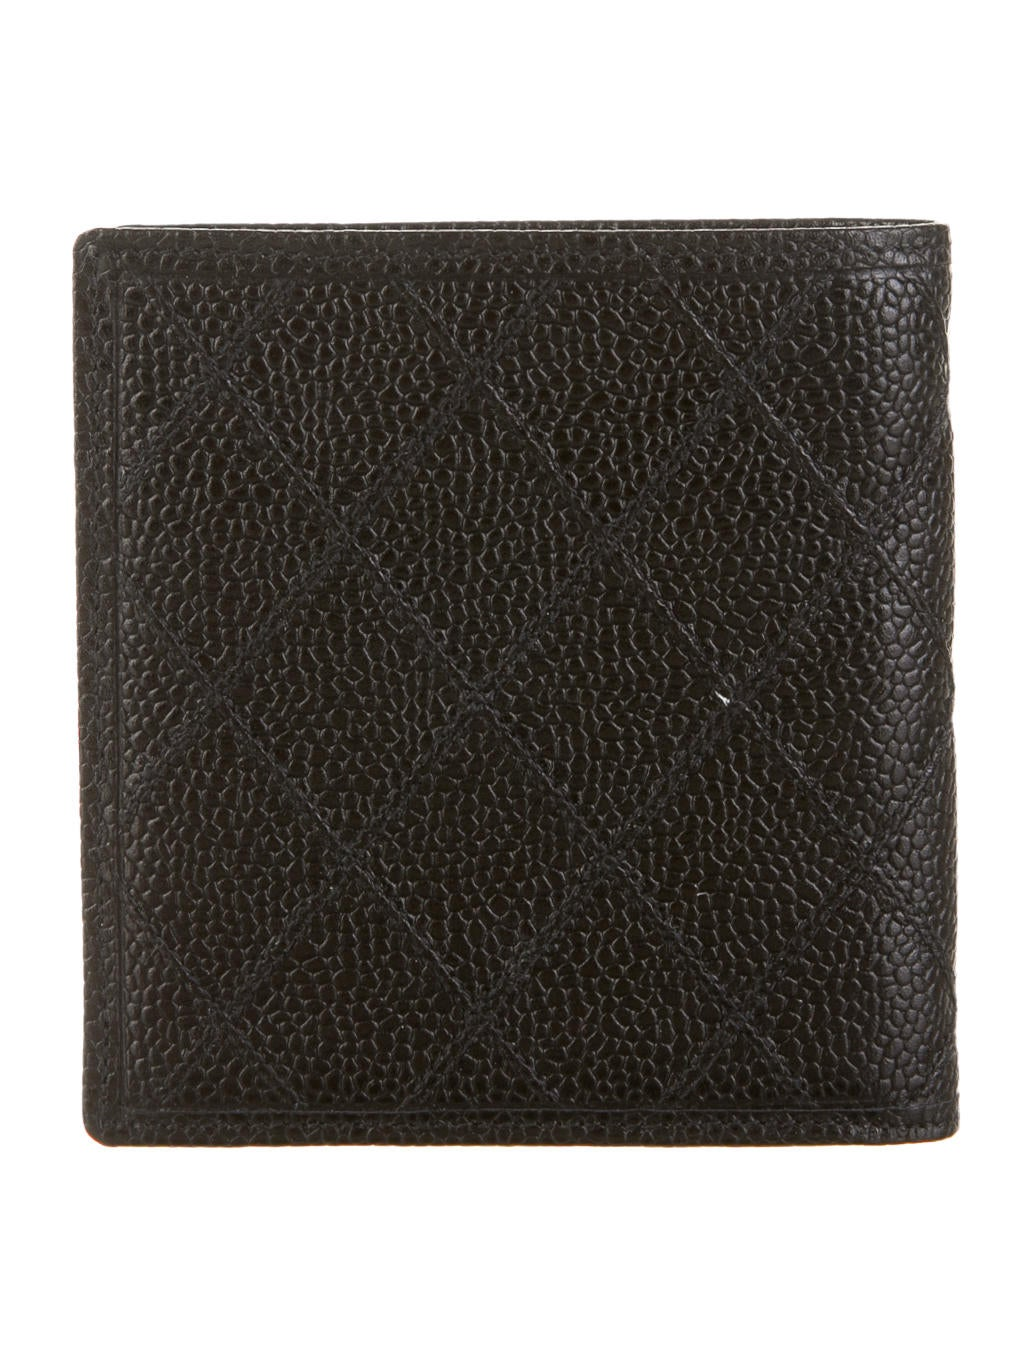 chanel vintage wallet accessories cha52316 the realreal